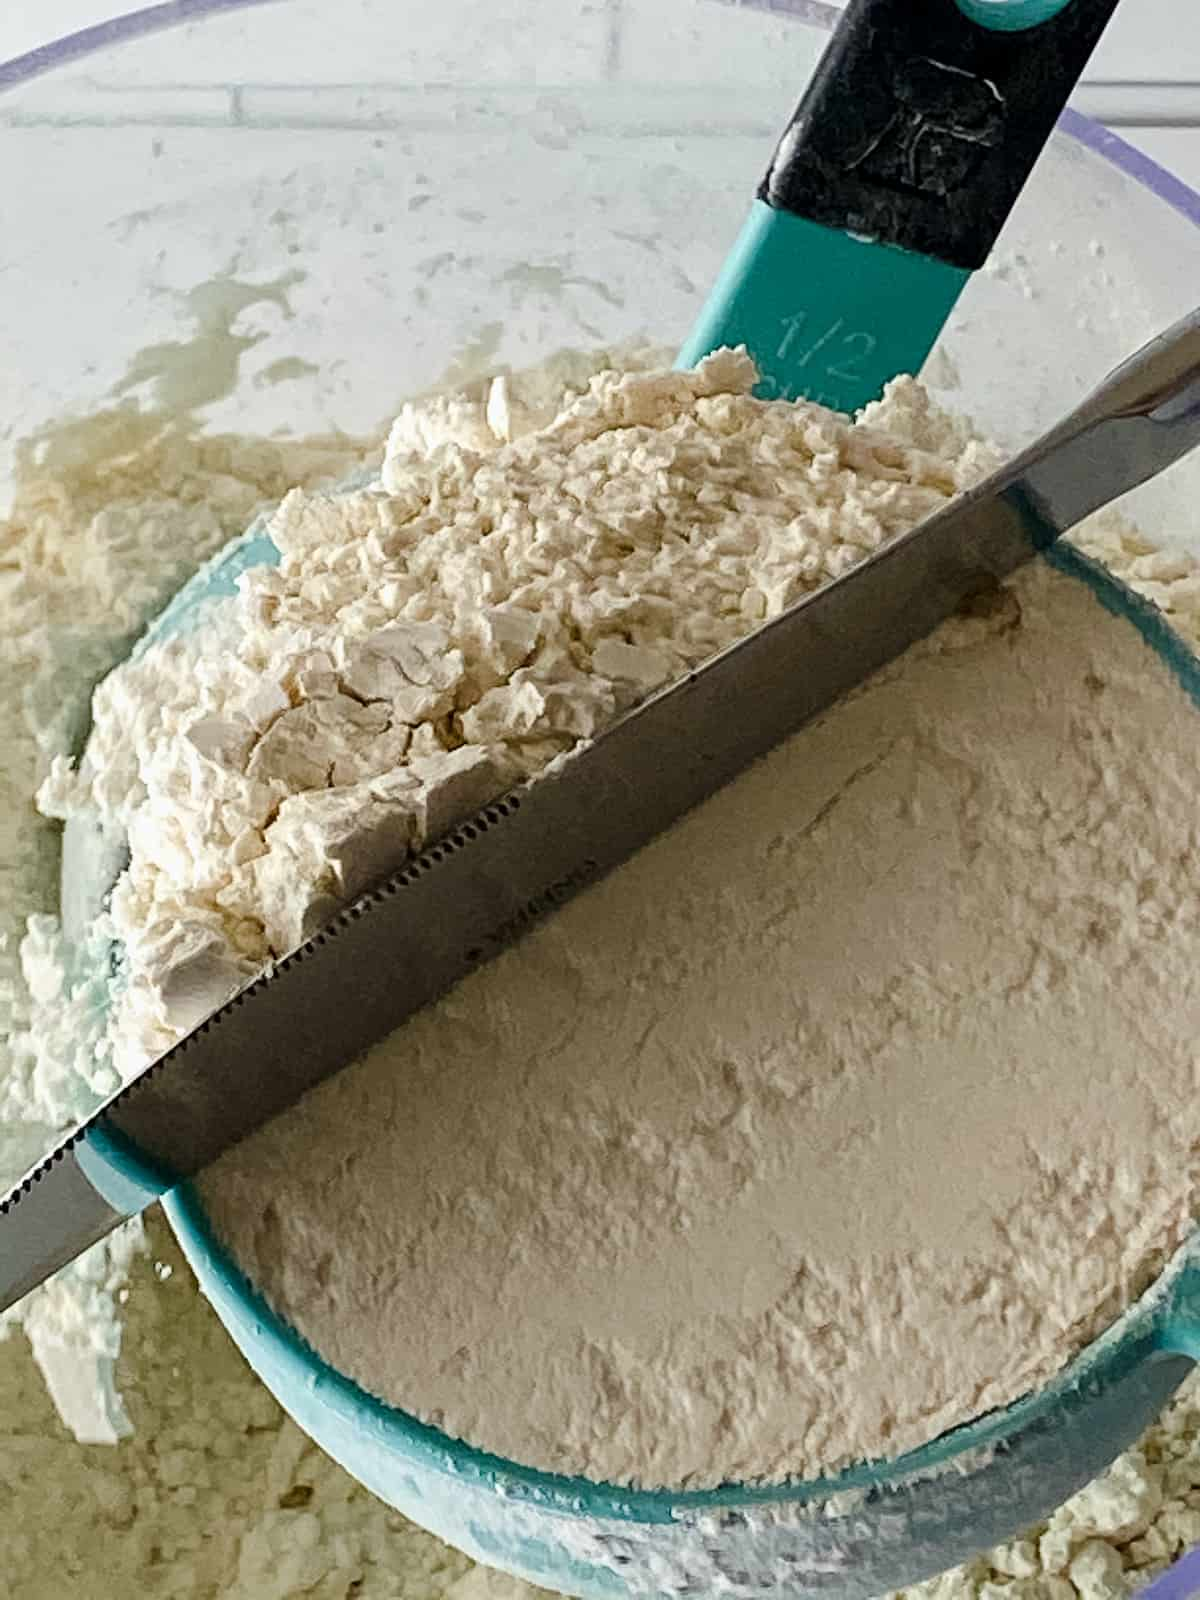 Measuring flour in a cup and leveling with a knife